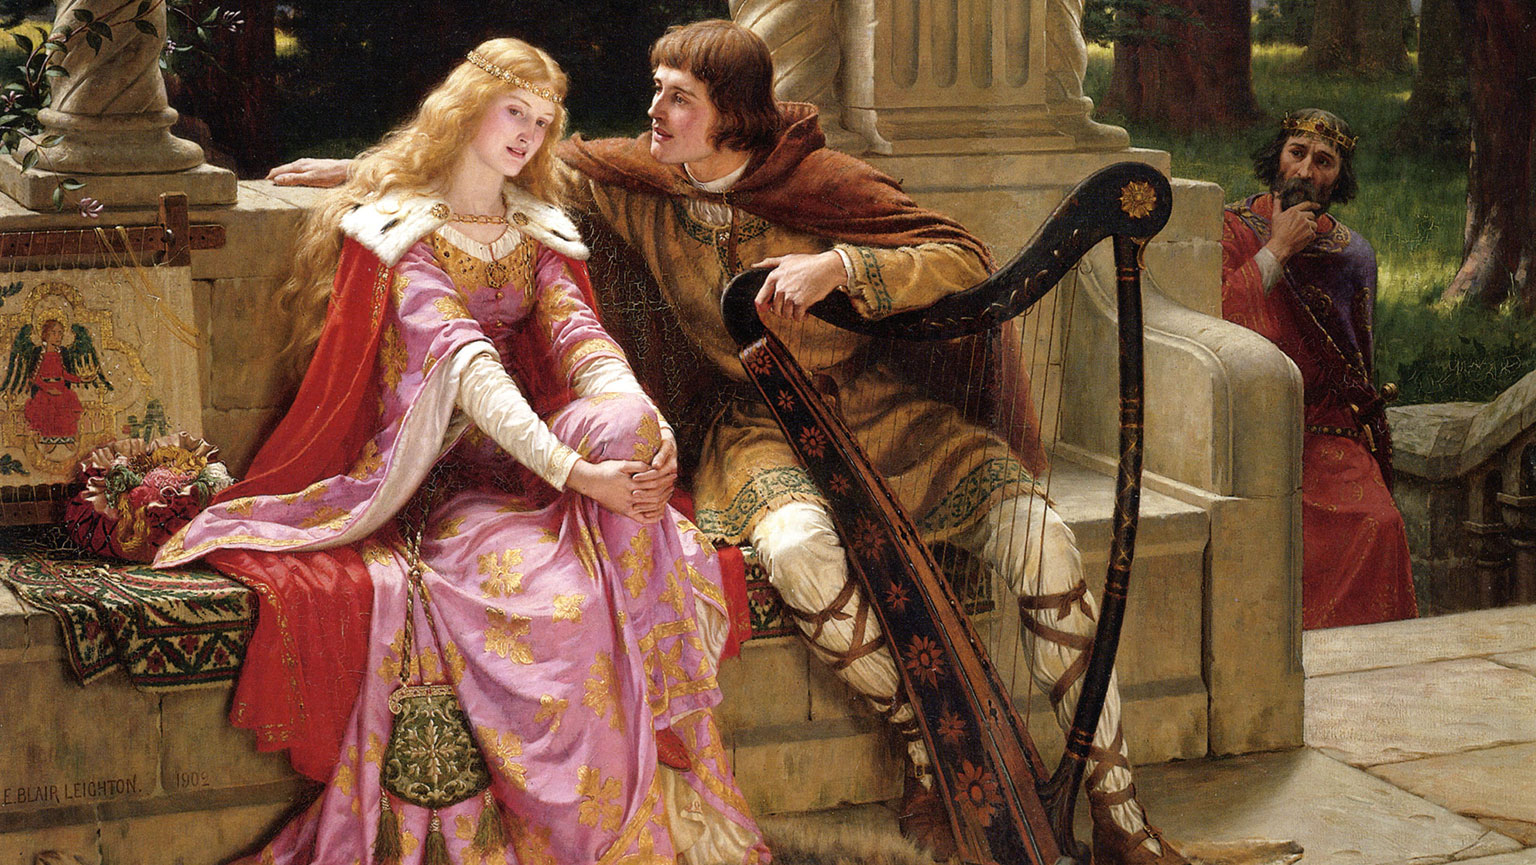 Enriching the Legend—Tristan and Isolde